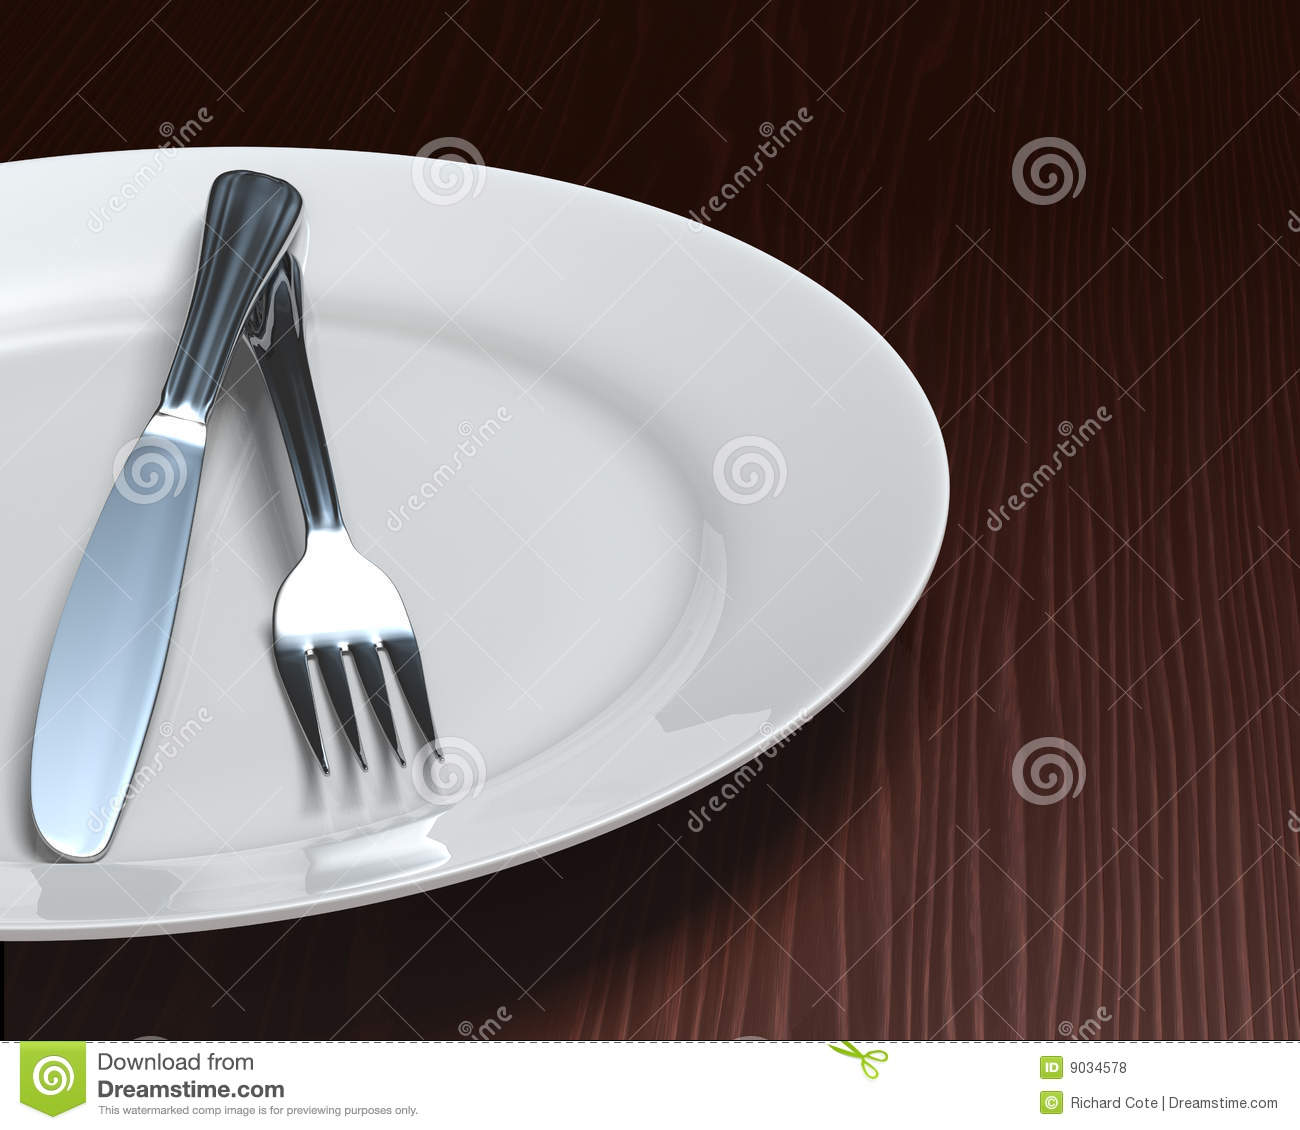 Clean Plate Amp Cutlery On Dark Woodgrain Table Royalty Free